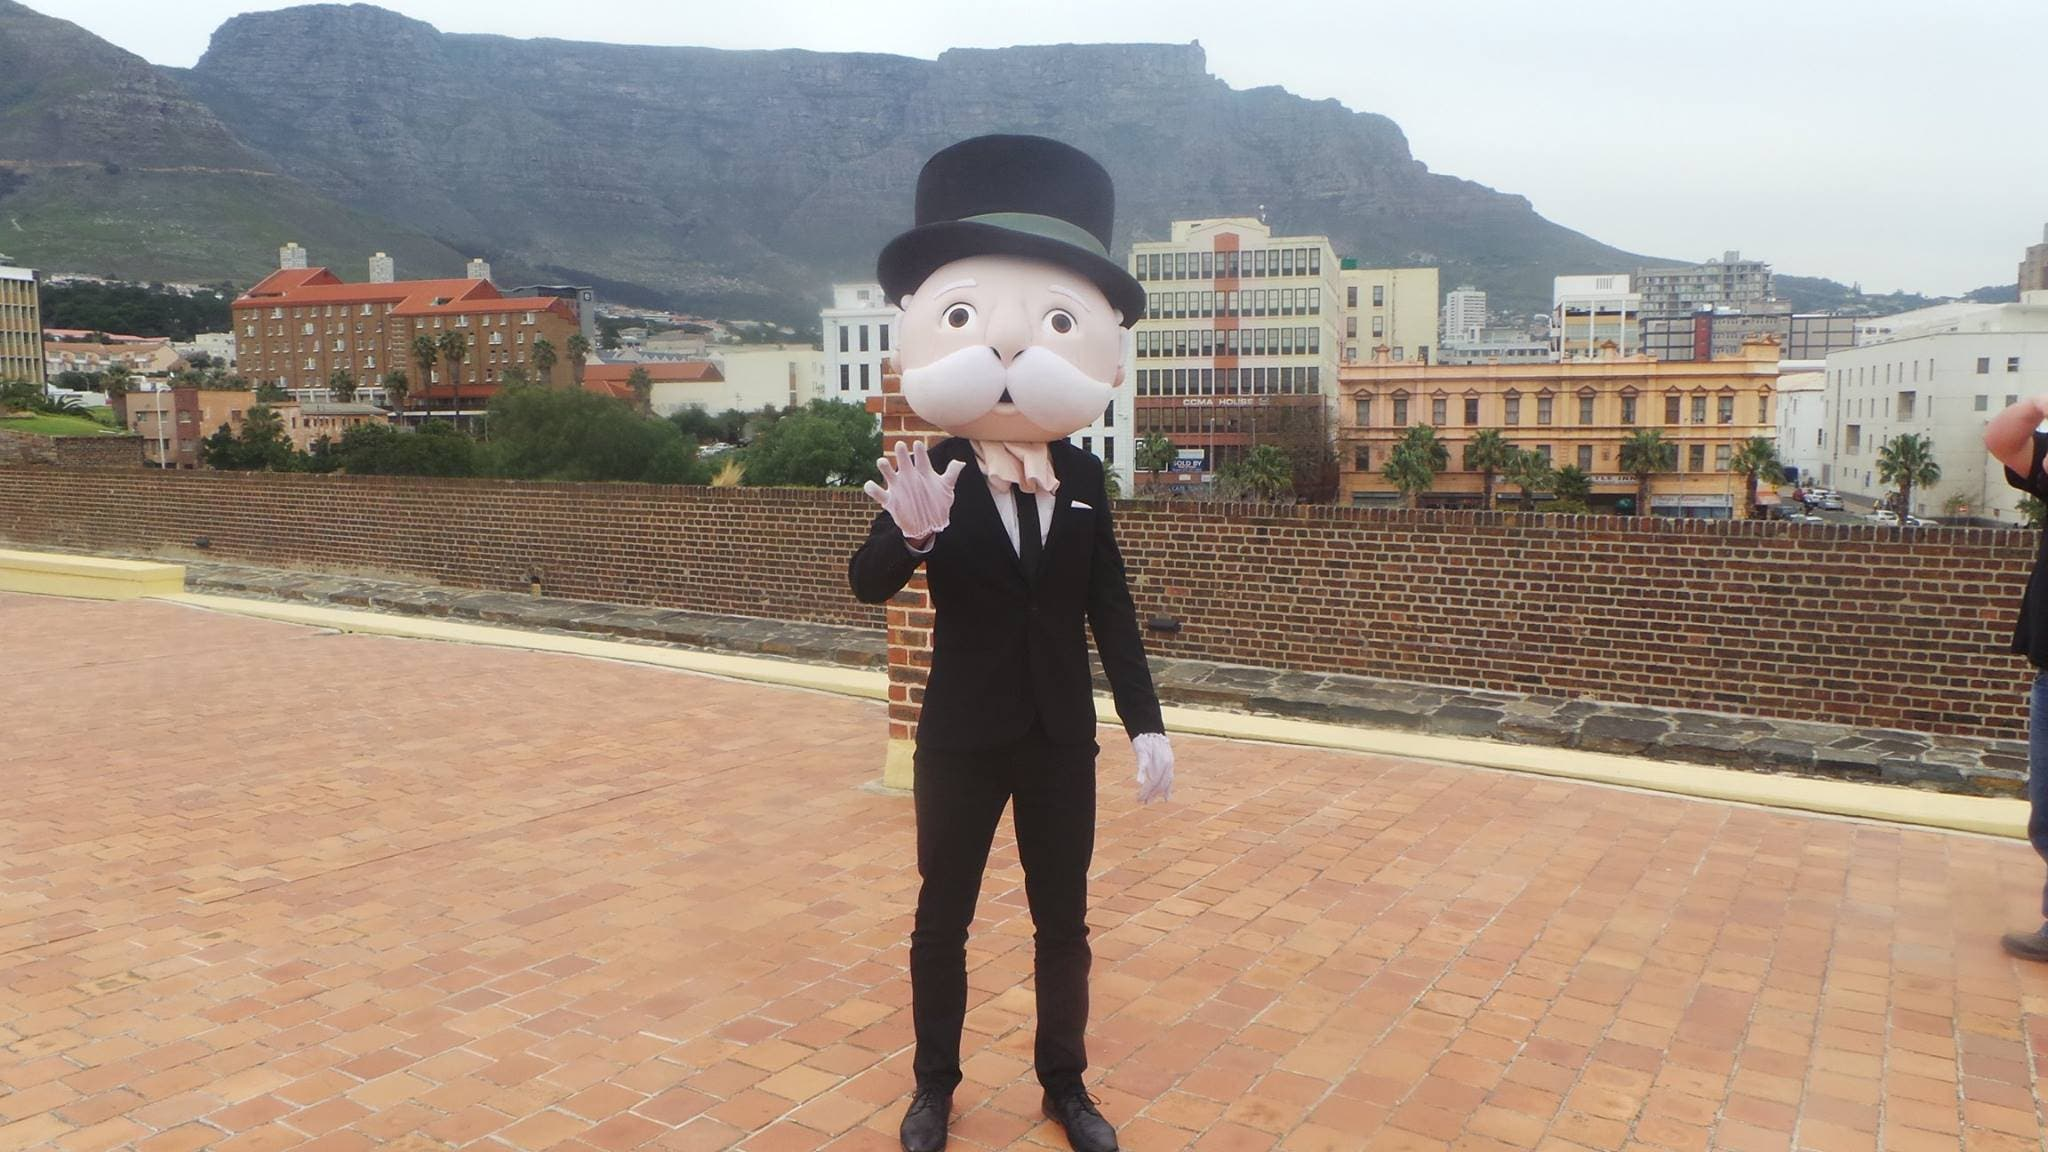 Mr. Monopoly in Cape Town. Source: Monopoly Cape Town Facebook page.